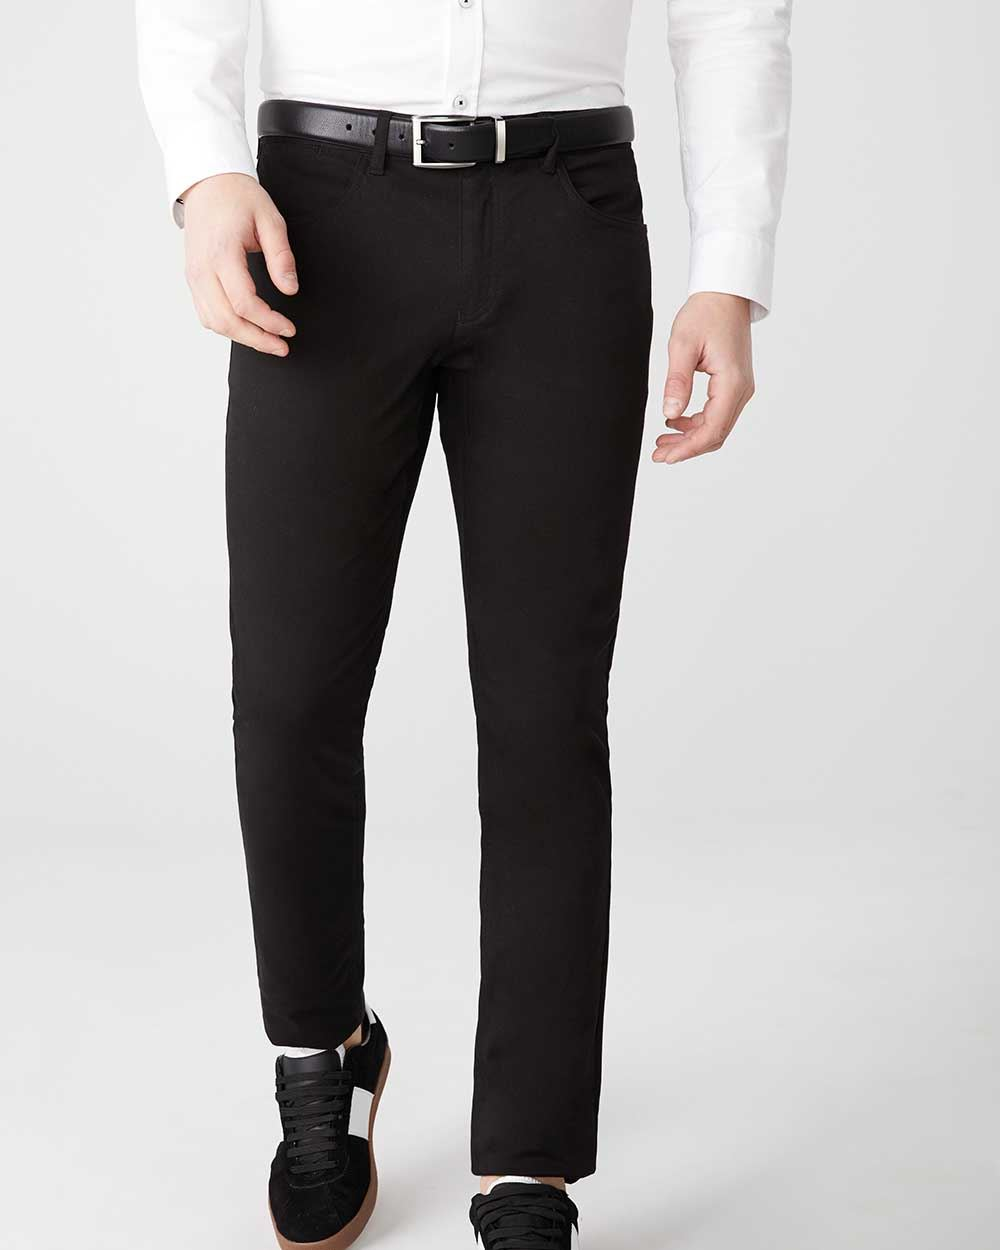 Slim fit 5-pocket pant